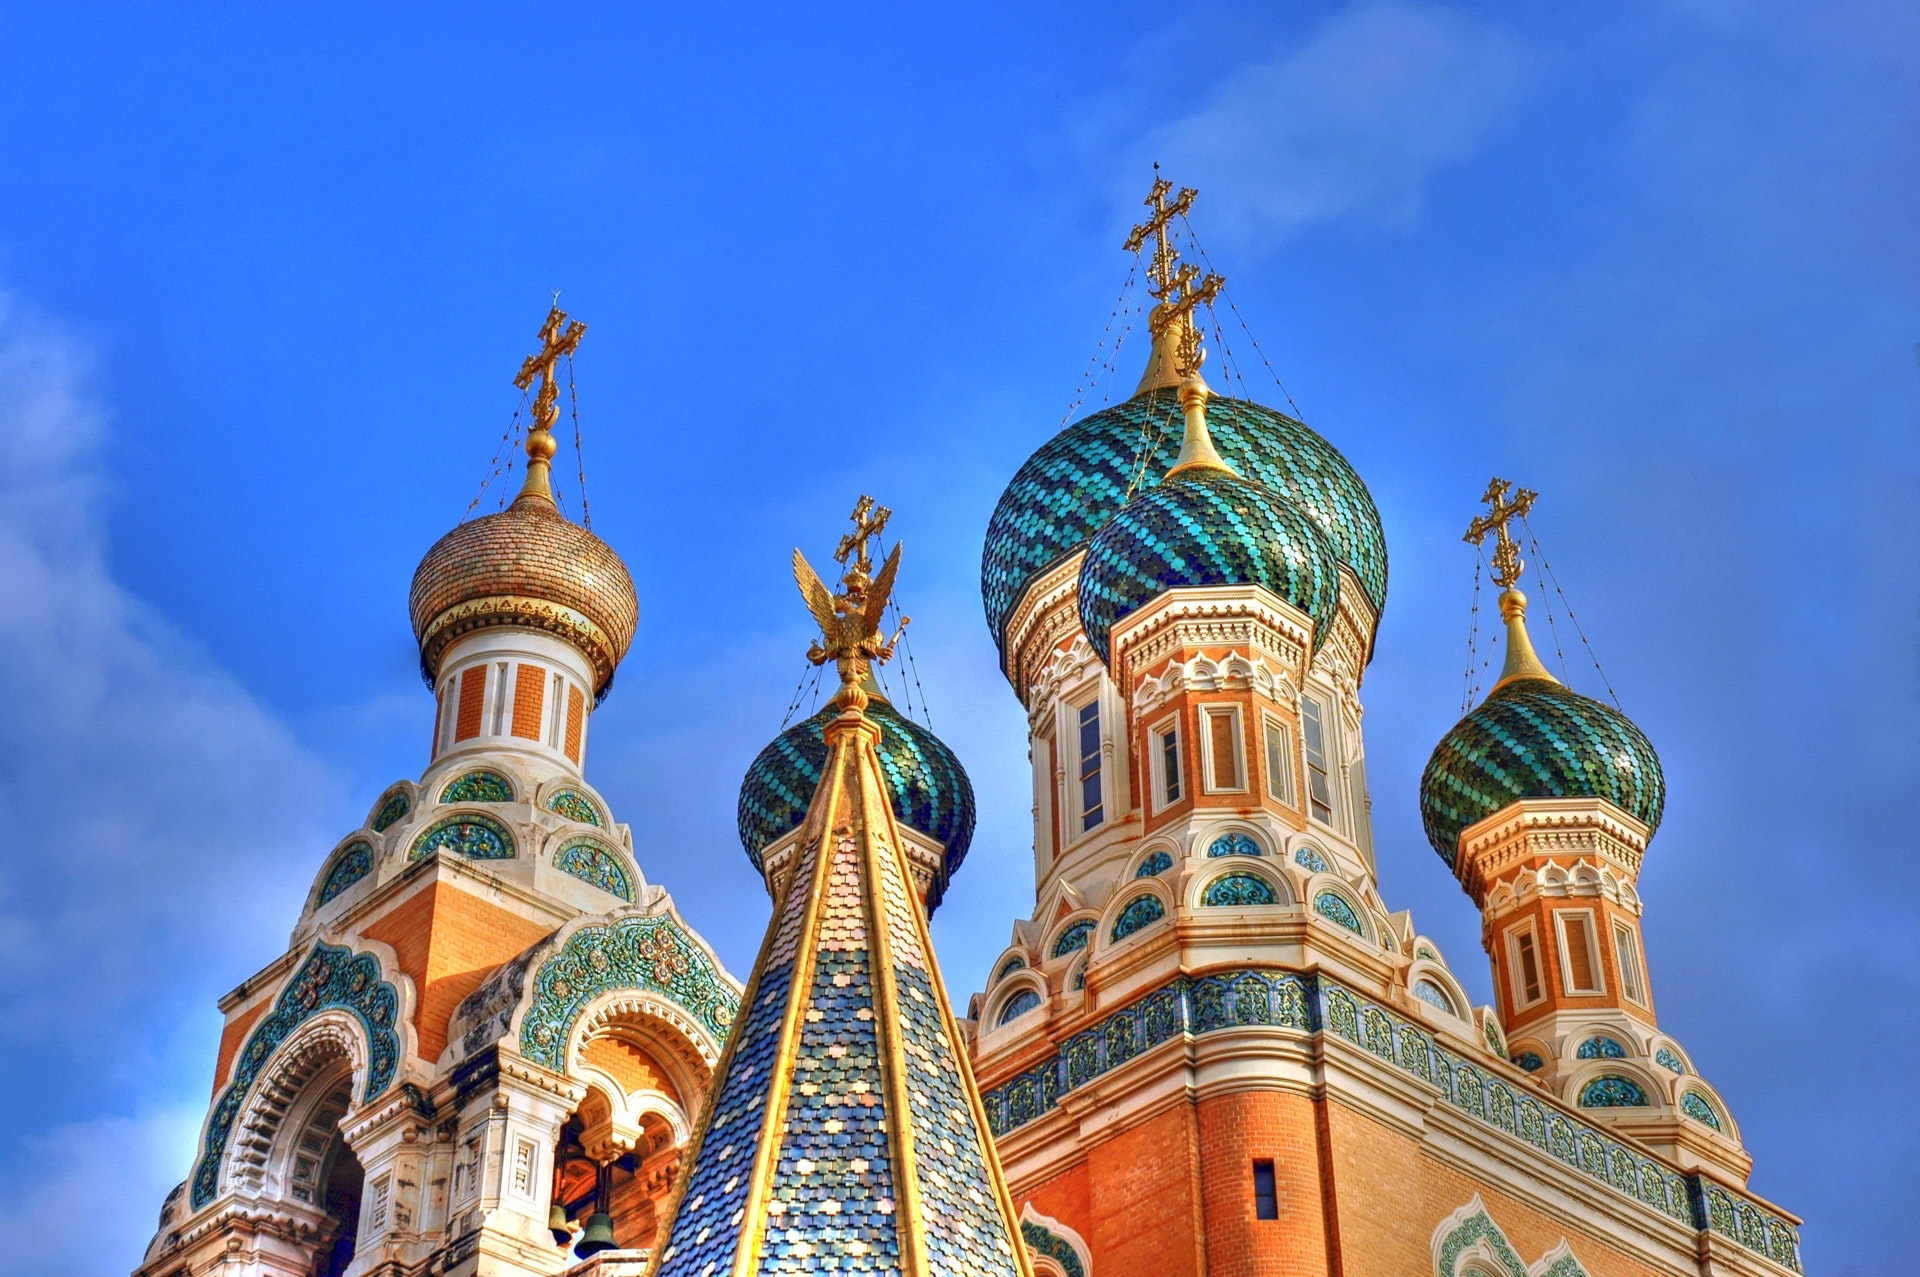 russian culture society - Q&A: Russian Cultural Values and Workplace Communication Patterns